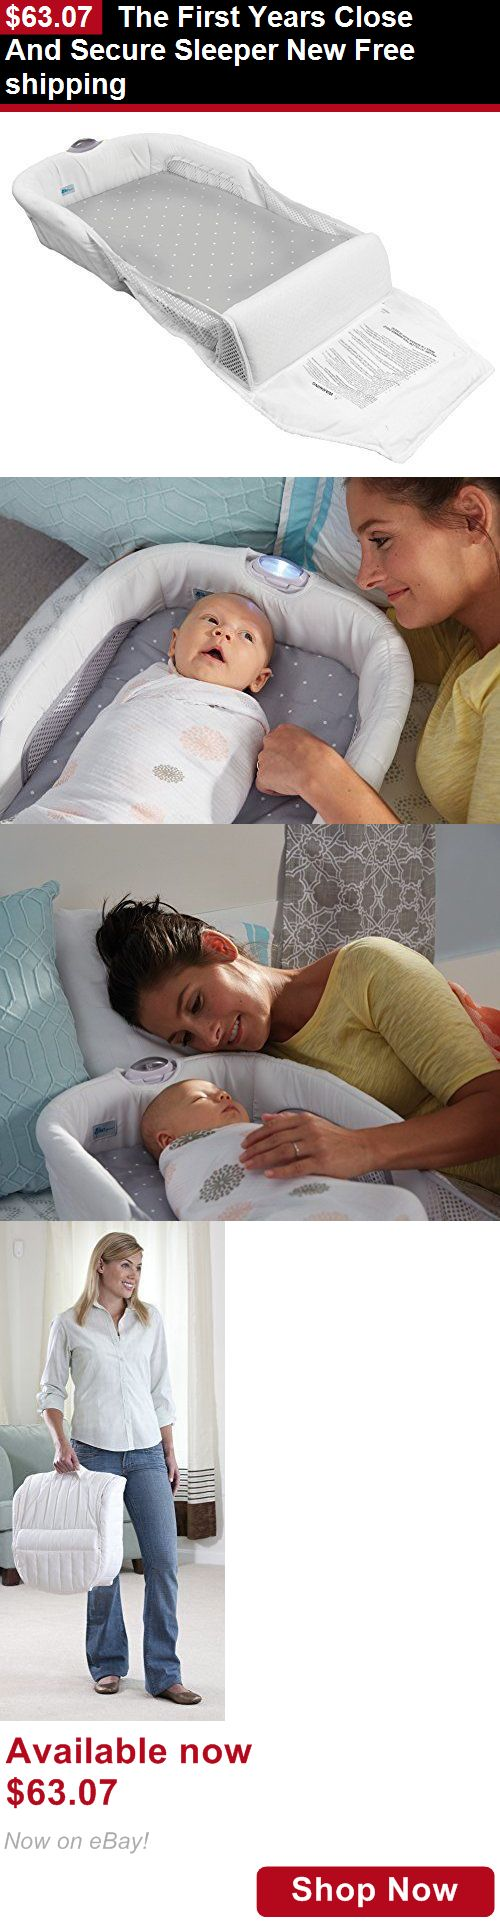 25 Best Ideas About Baby Co Sleeper On Pinterest Co